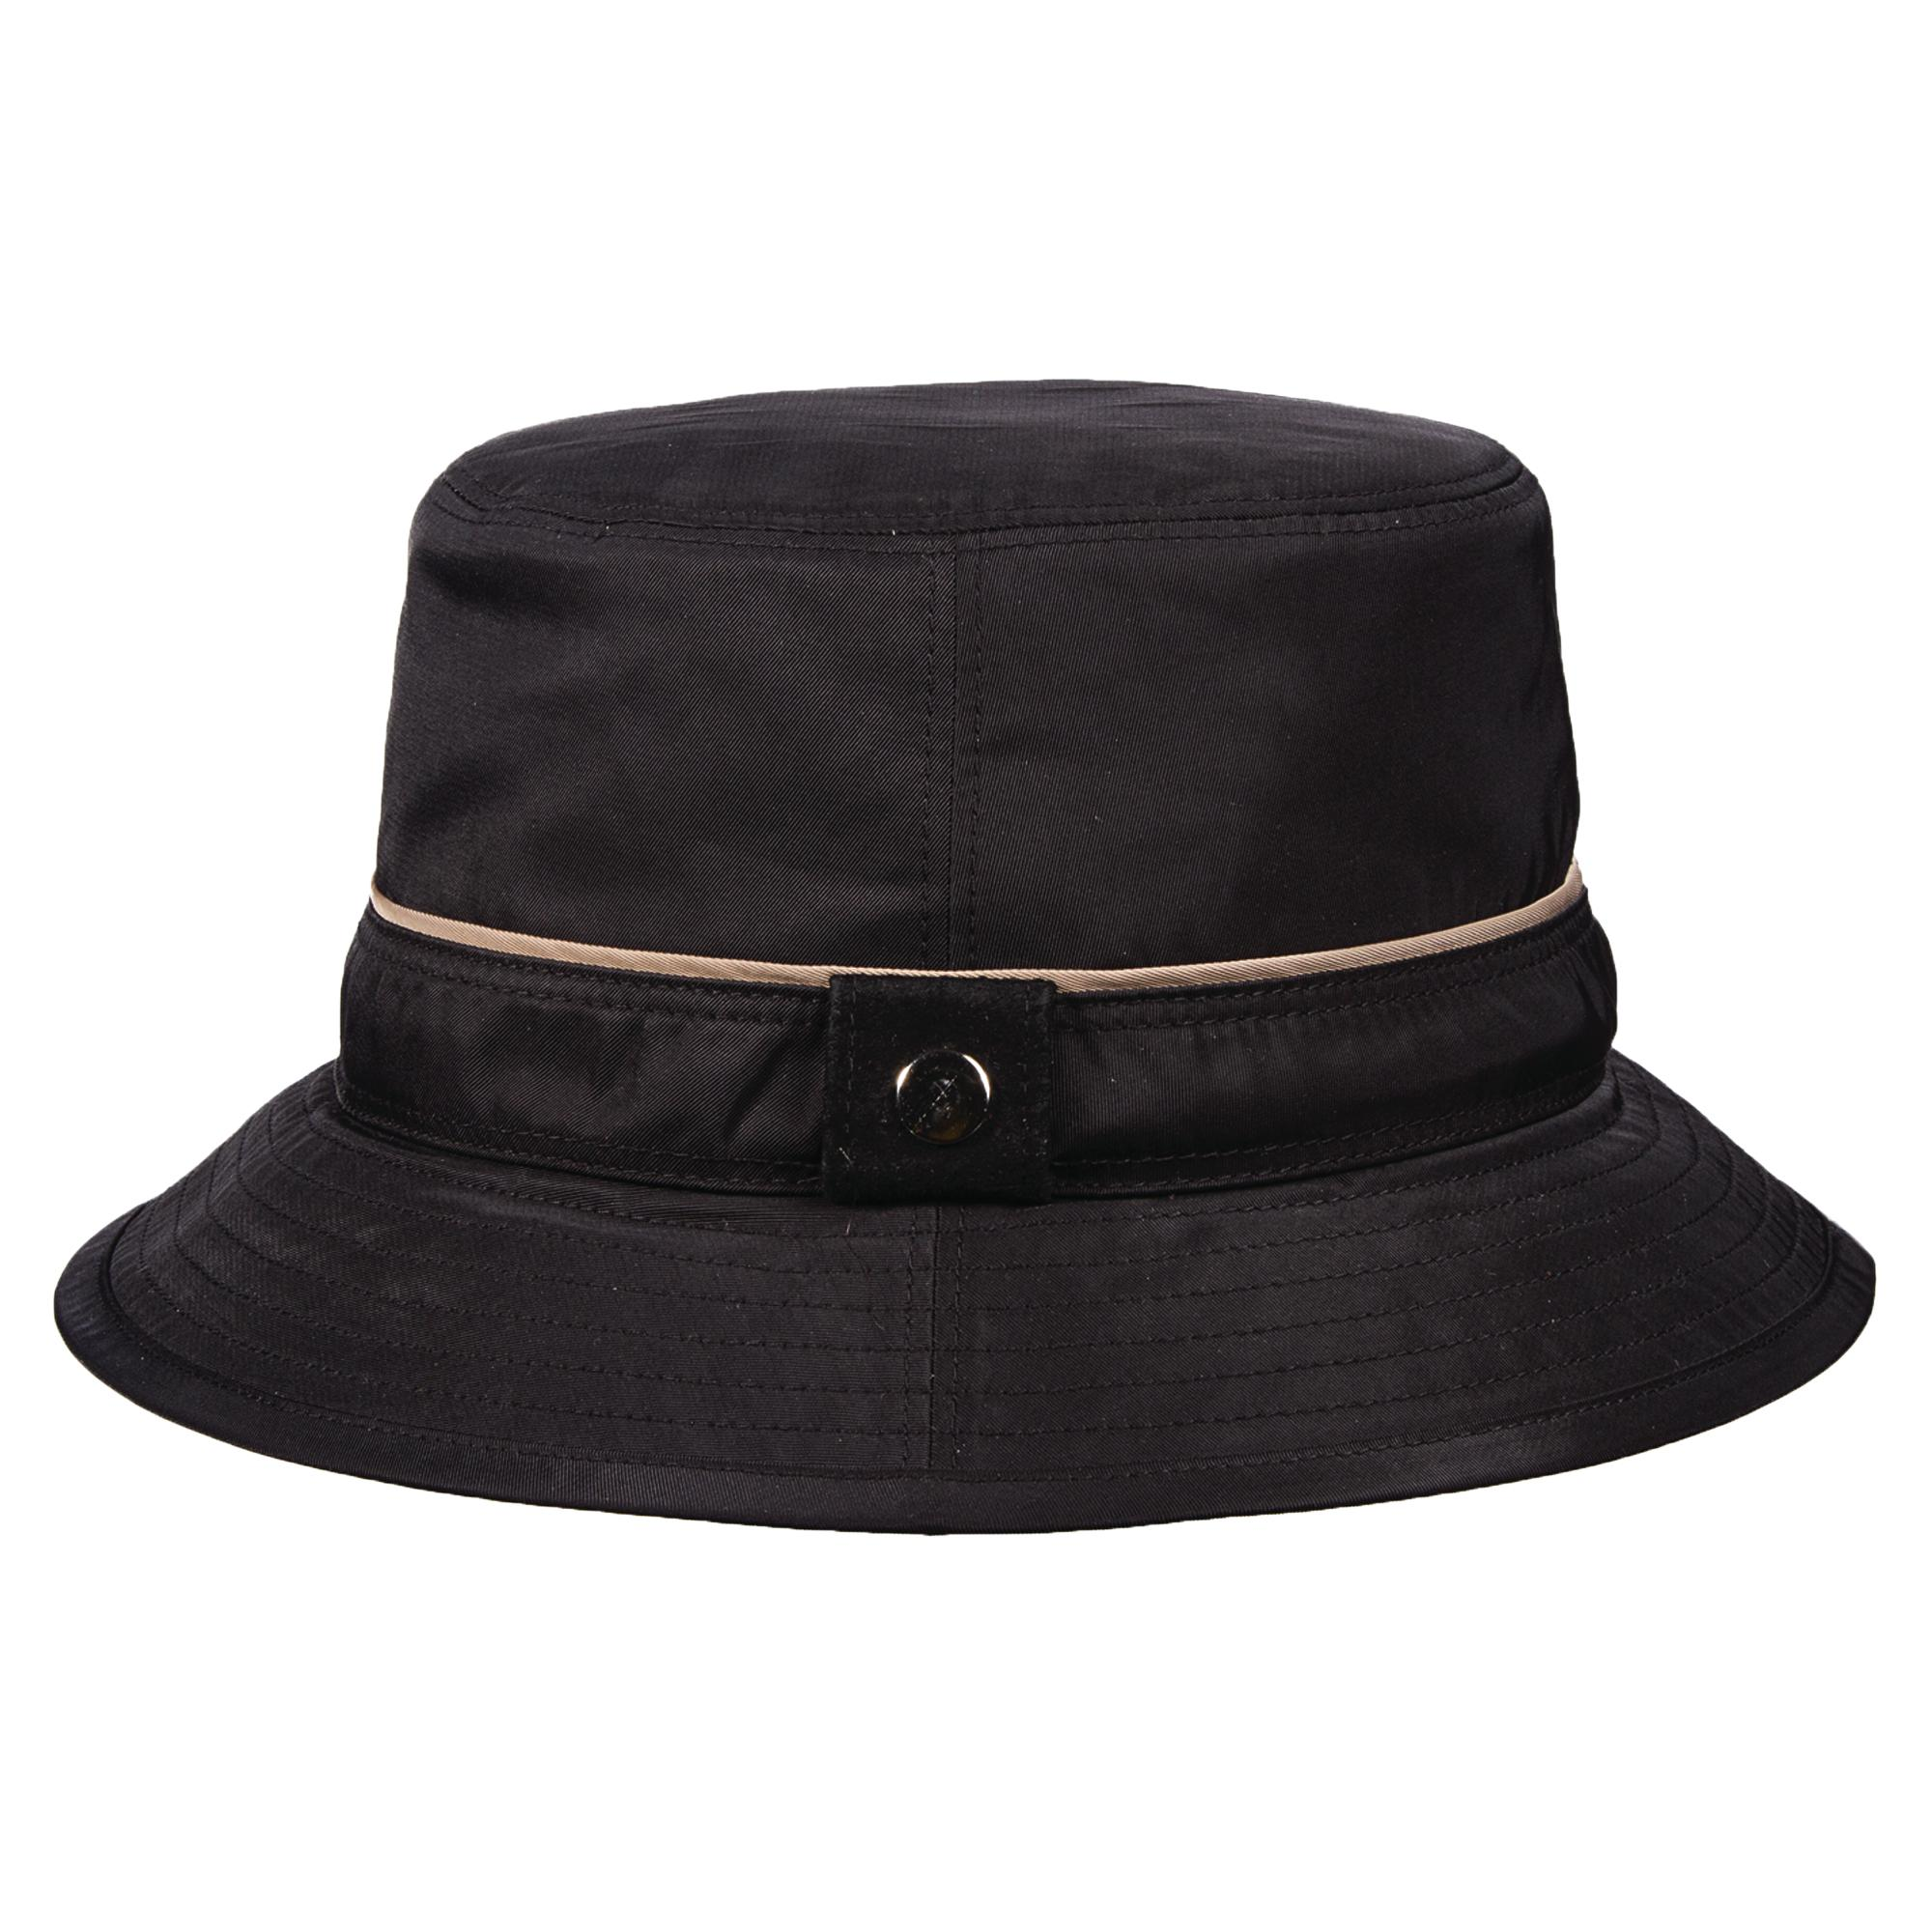 new stetson s waterproof and snow hat ebay